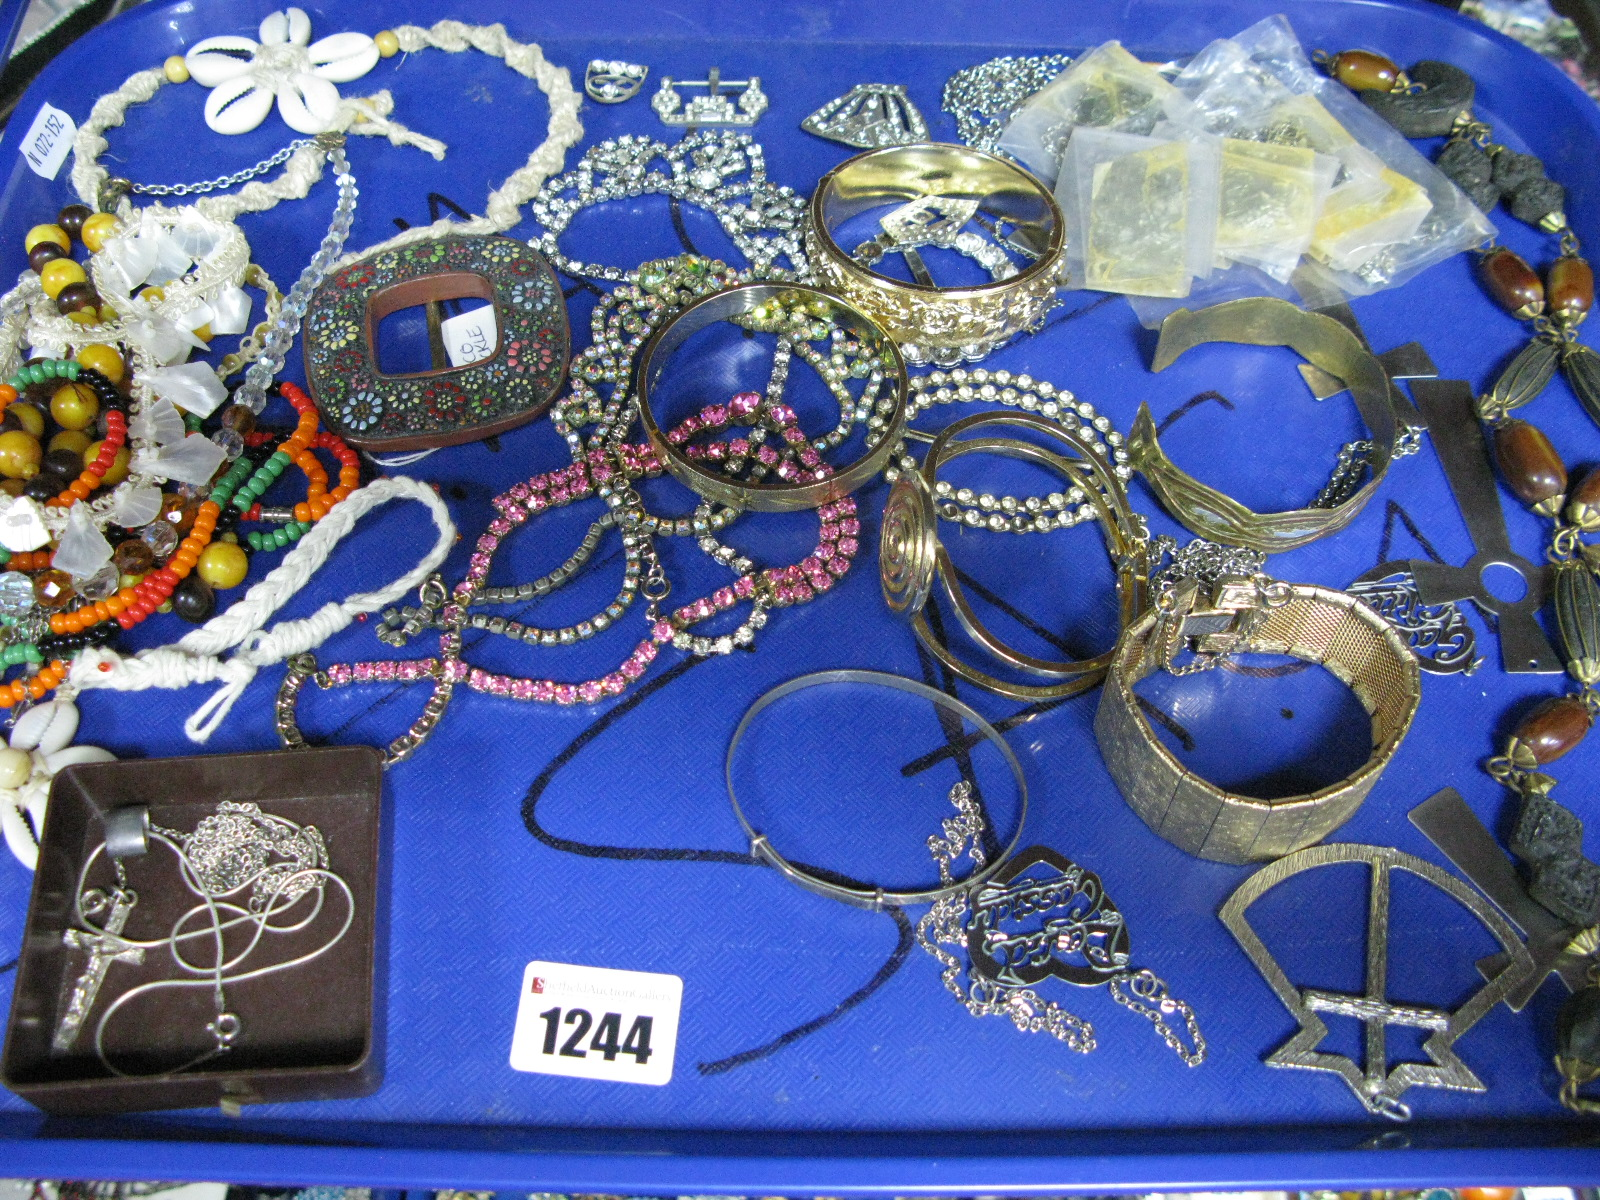 Lot 1244 - A Mixed Lot of Assorted Costume Jewellery, including stainless steel crosses and other pendants,